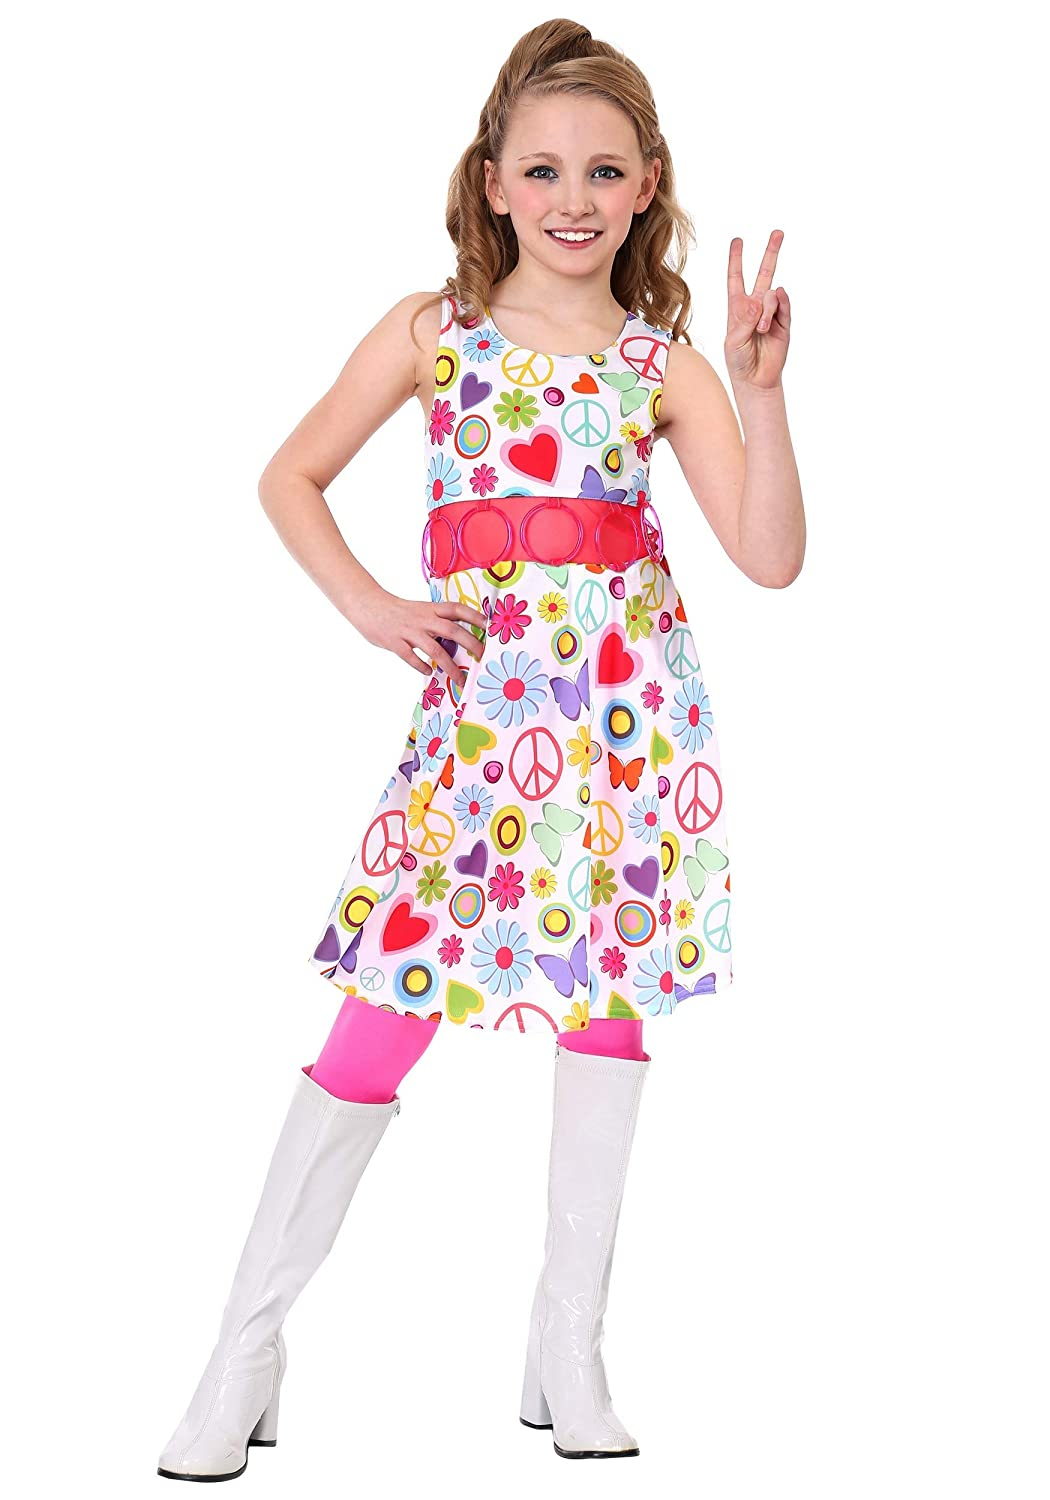 60s 70s Kids Costumes & Clothing Girls & Boys Girls Peace & Love Hippie Costume $9.99 AT vintagedancer.com